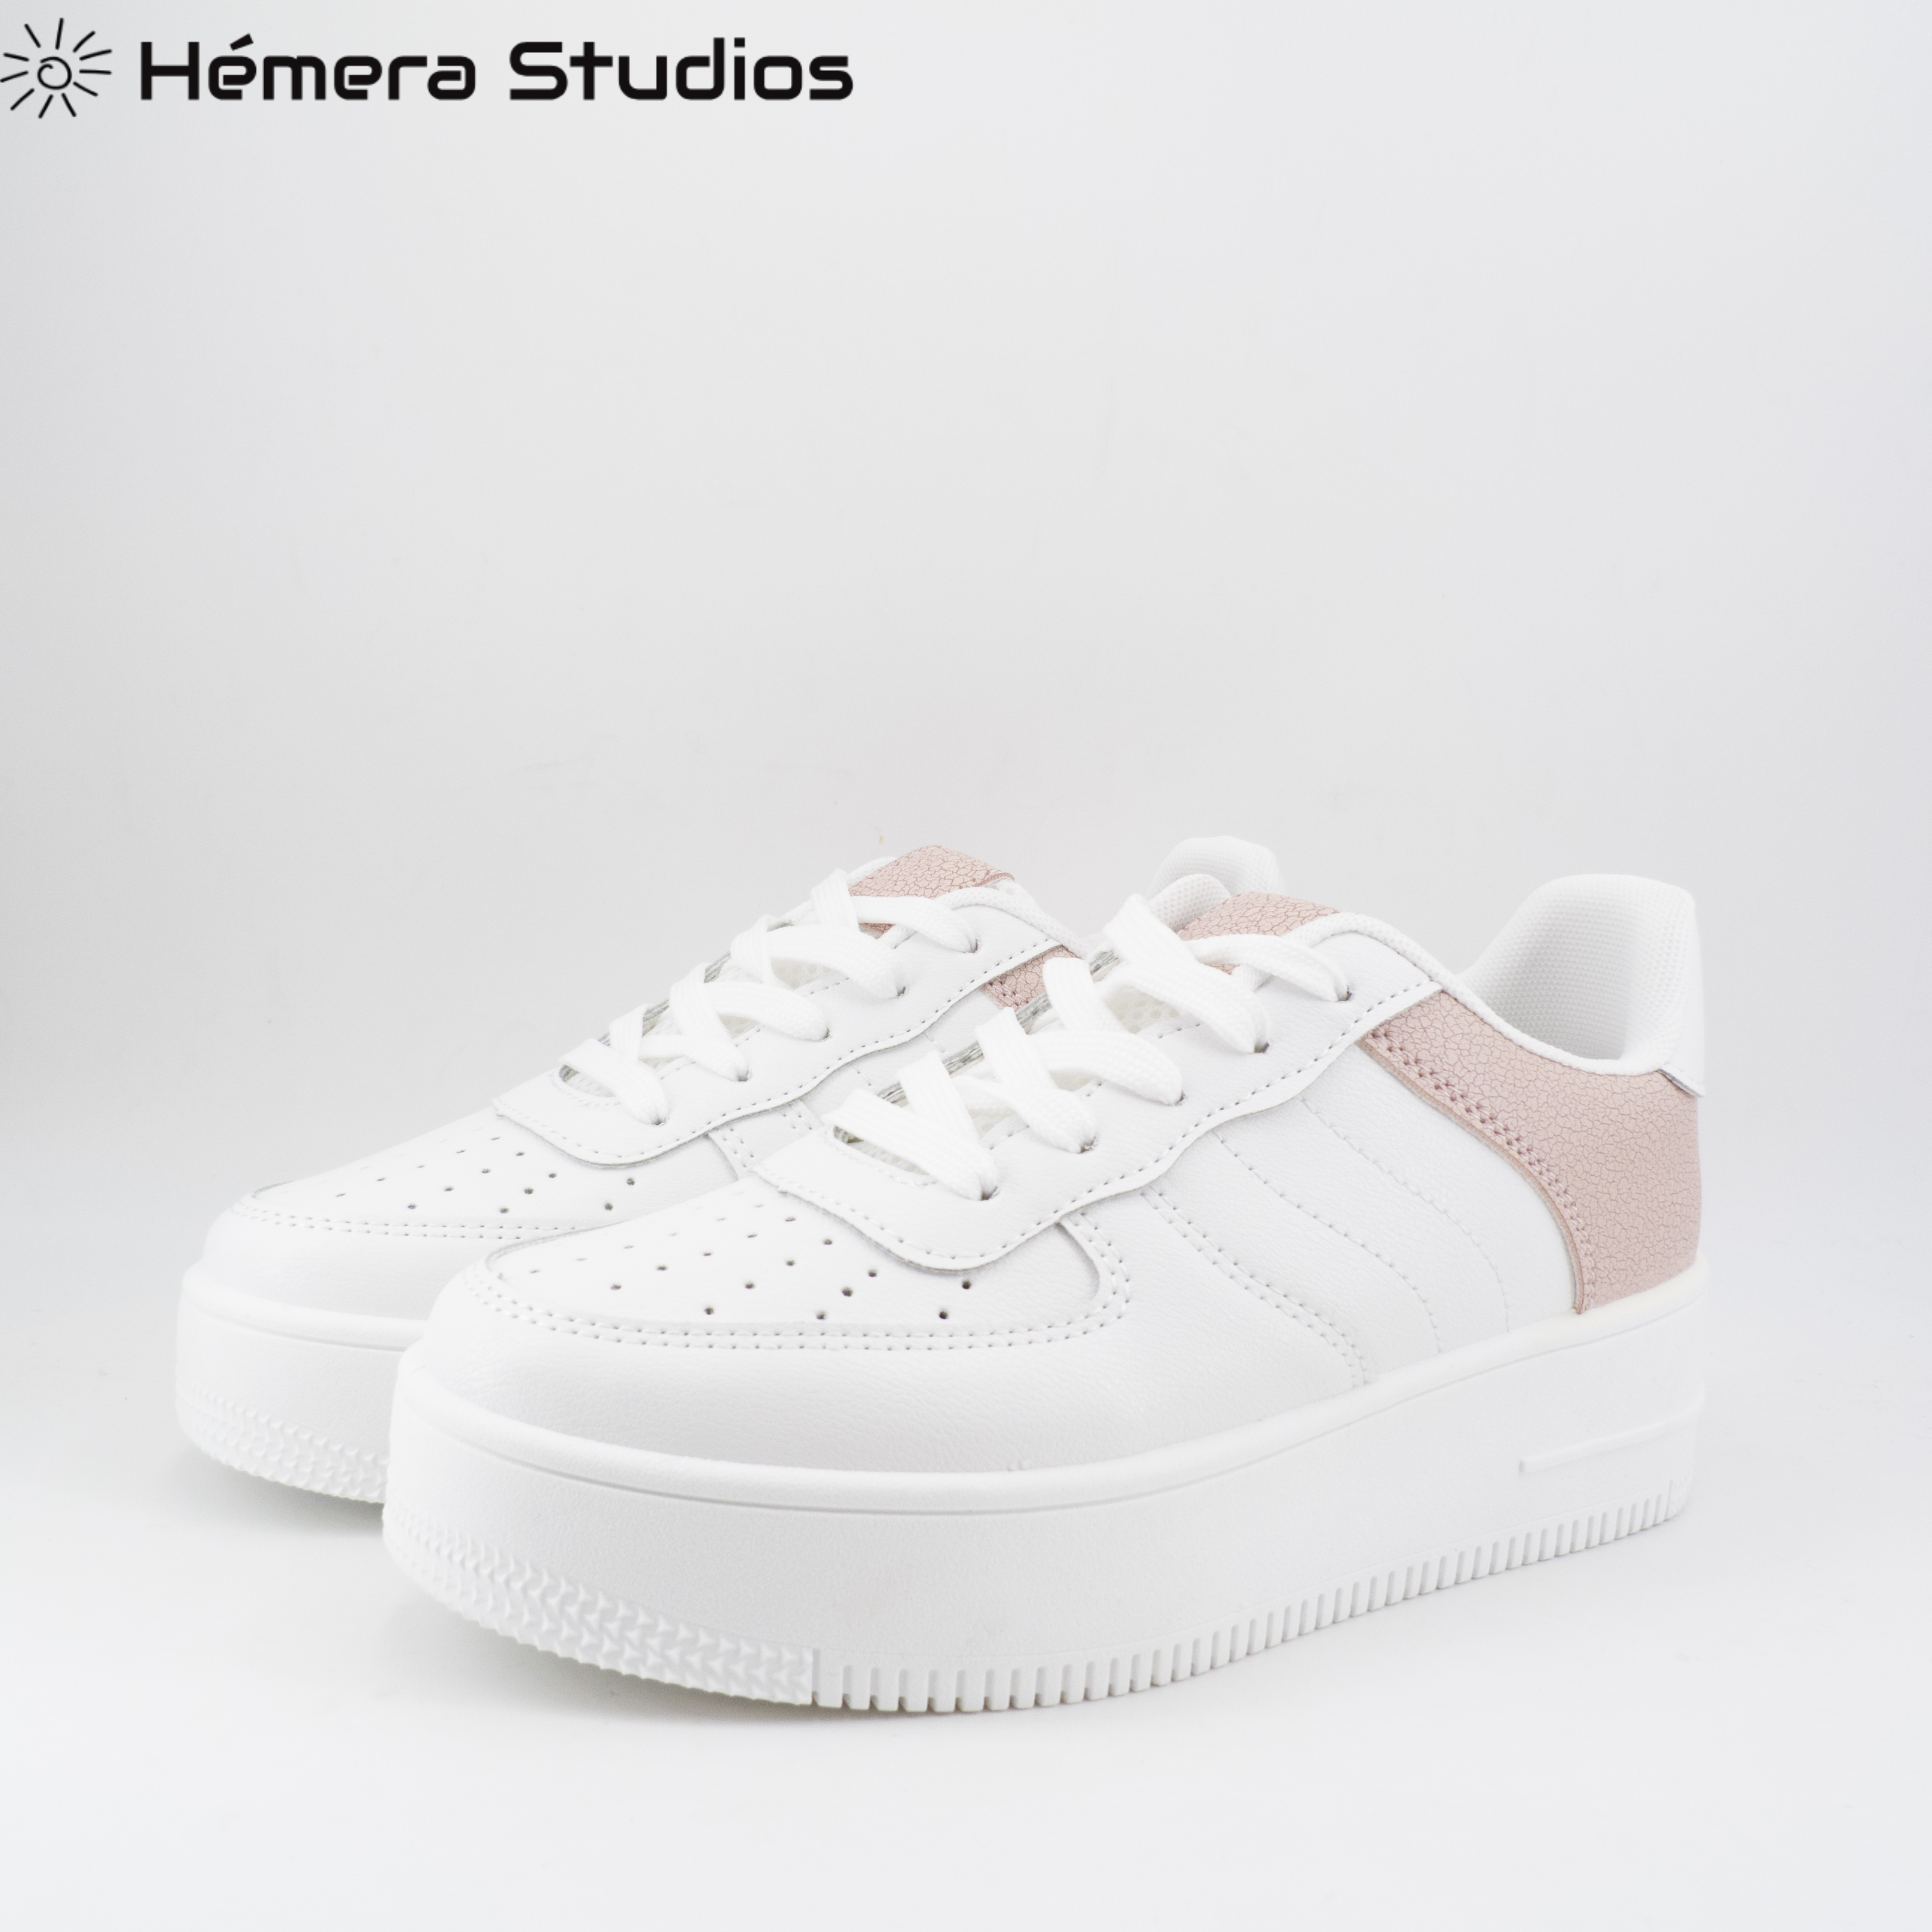 Smart Casual Sneaker For Woman With Cords Platform Sneakers Sneakers In White Stamping Animal 2020 Summer Fashion Fashion